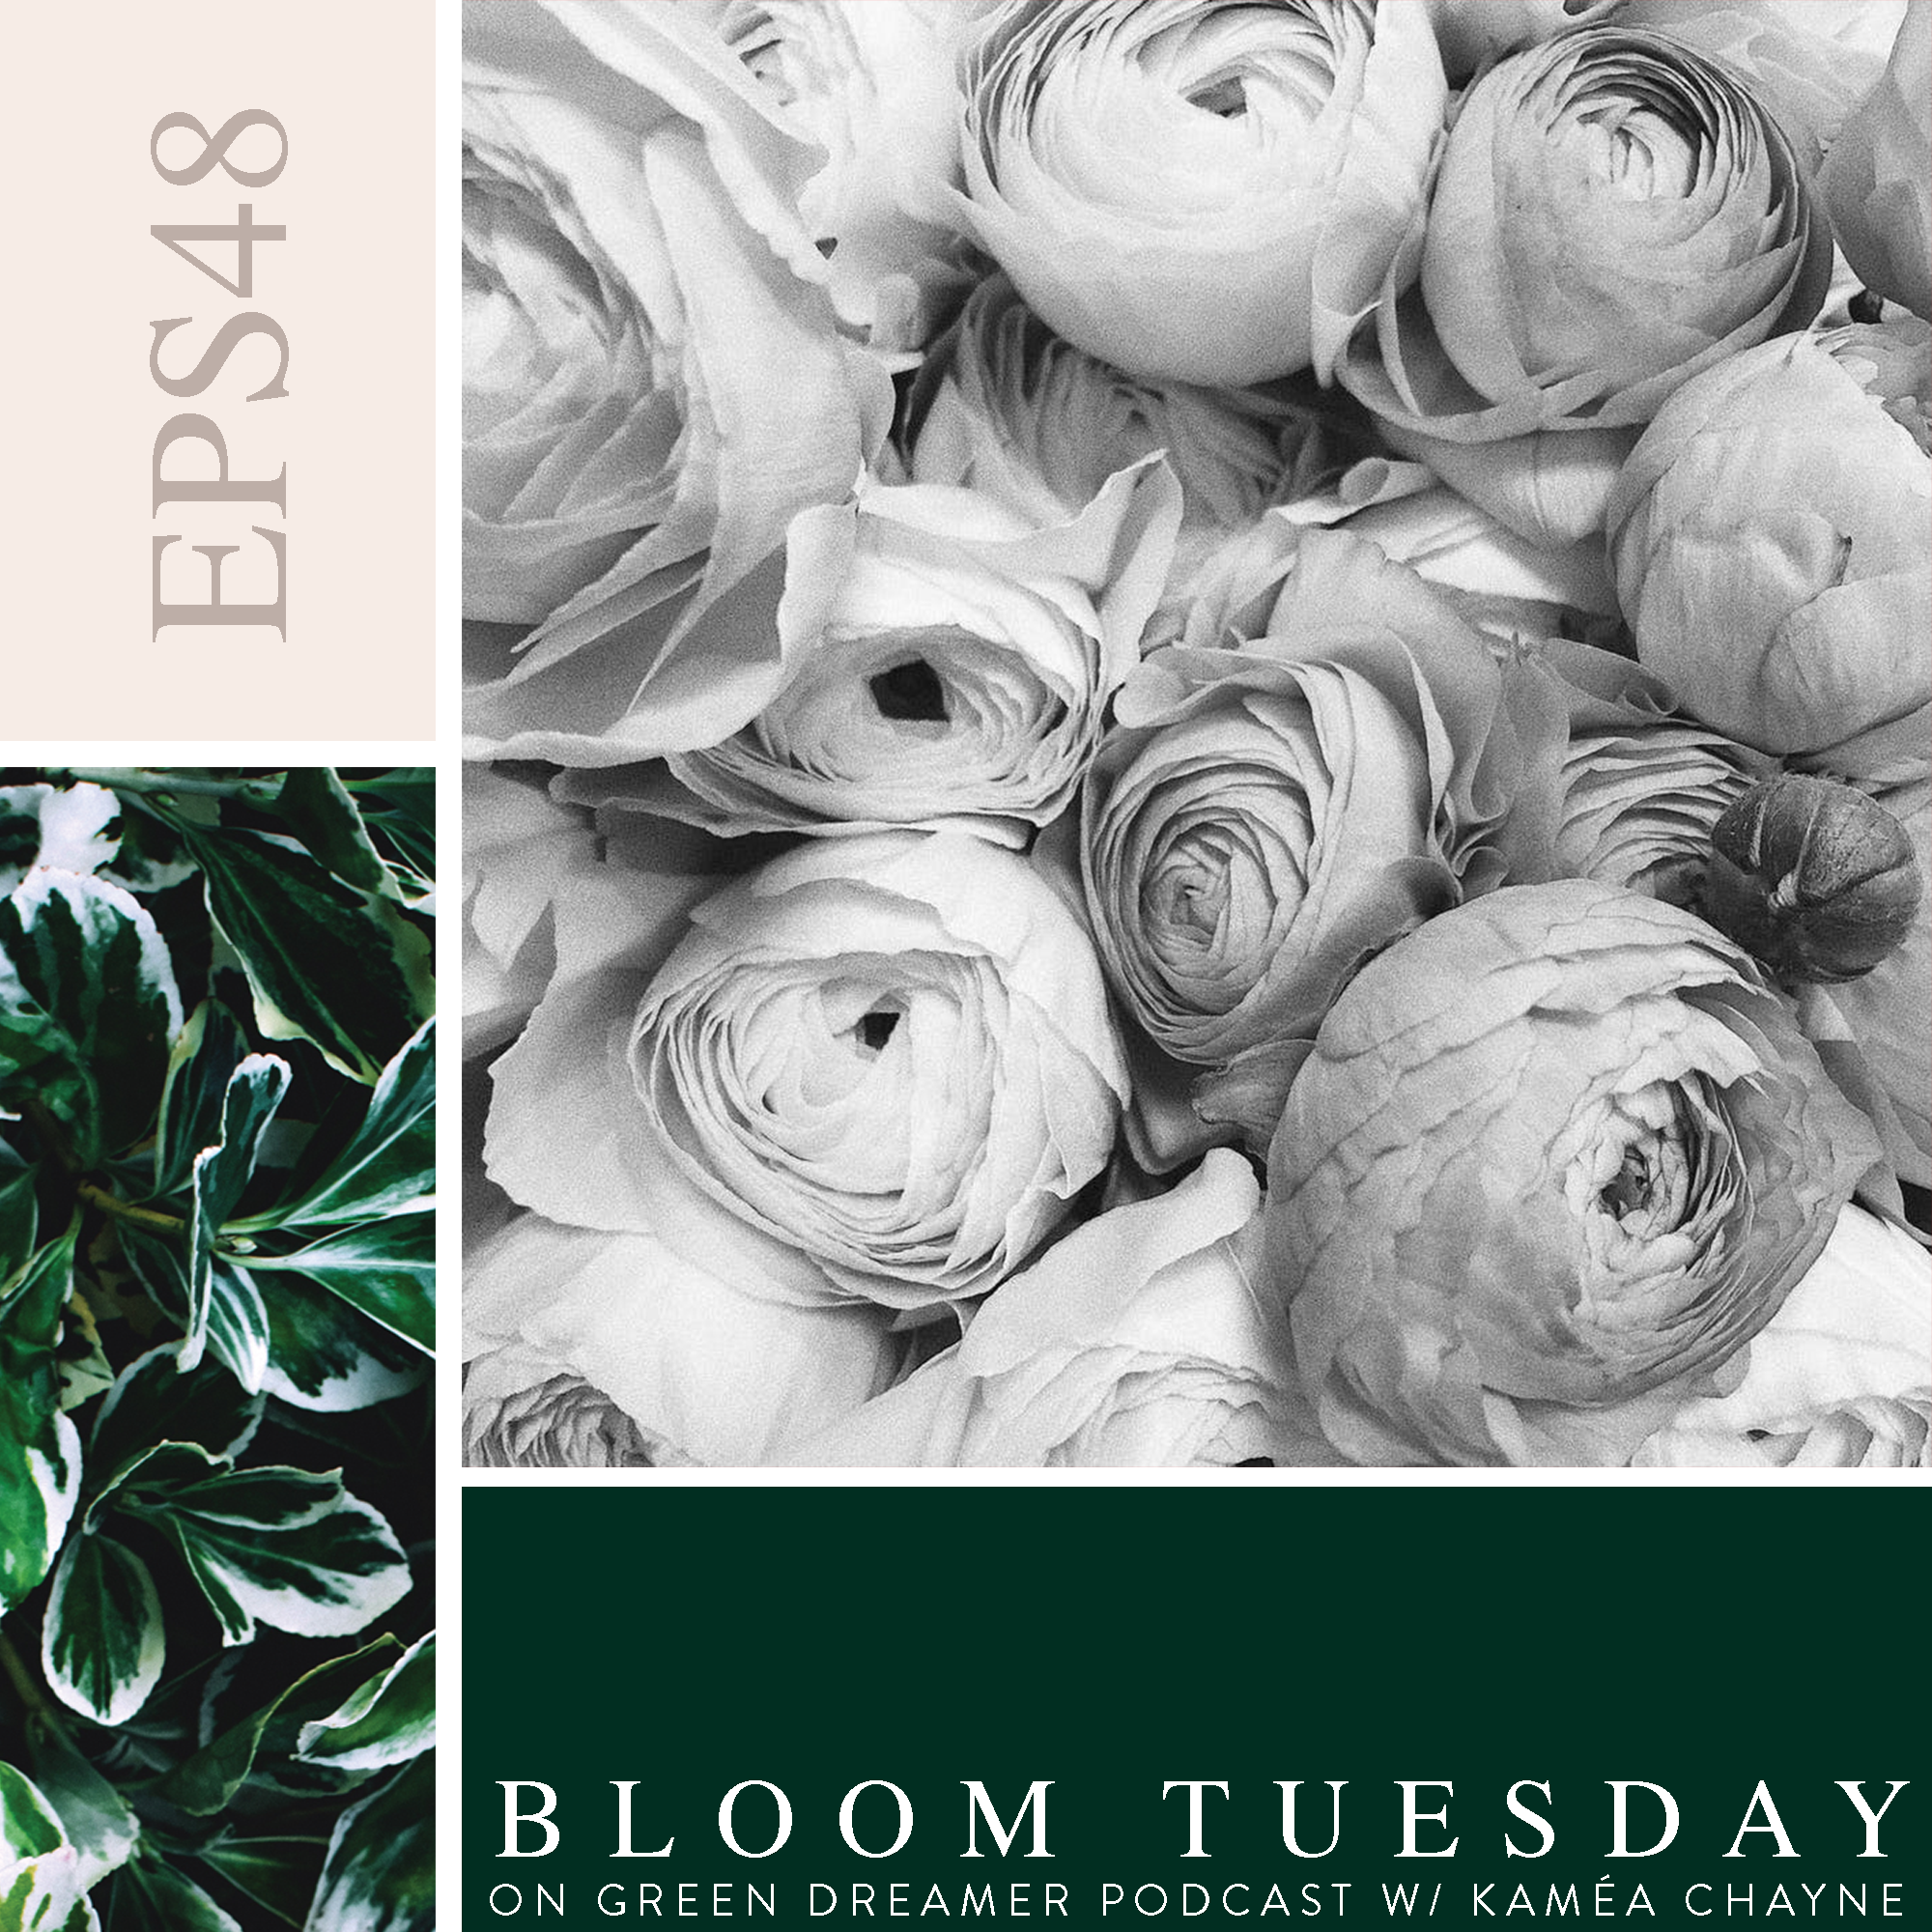 48) BLOOM TUESDAY